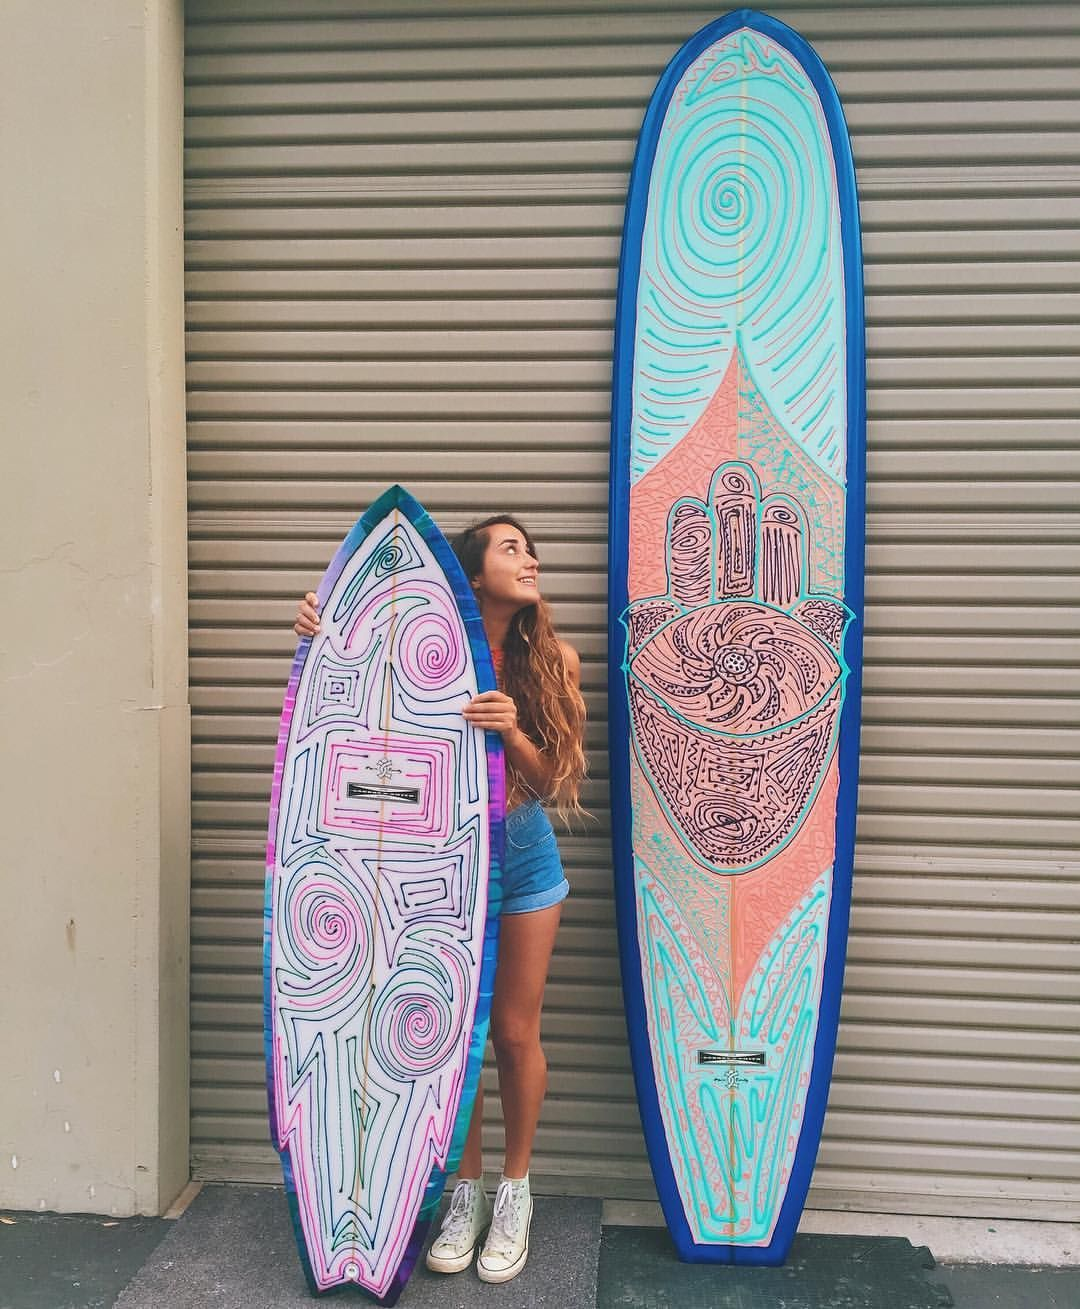 Surfboard Design | Surf, Surfboards and Surf board